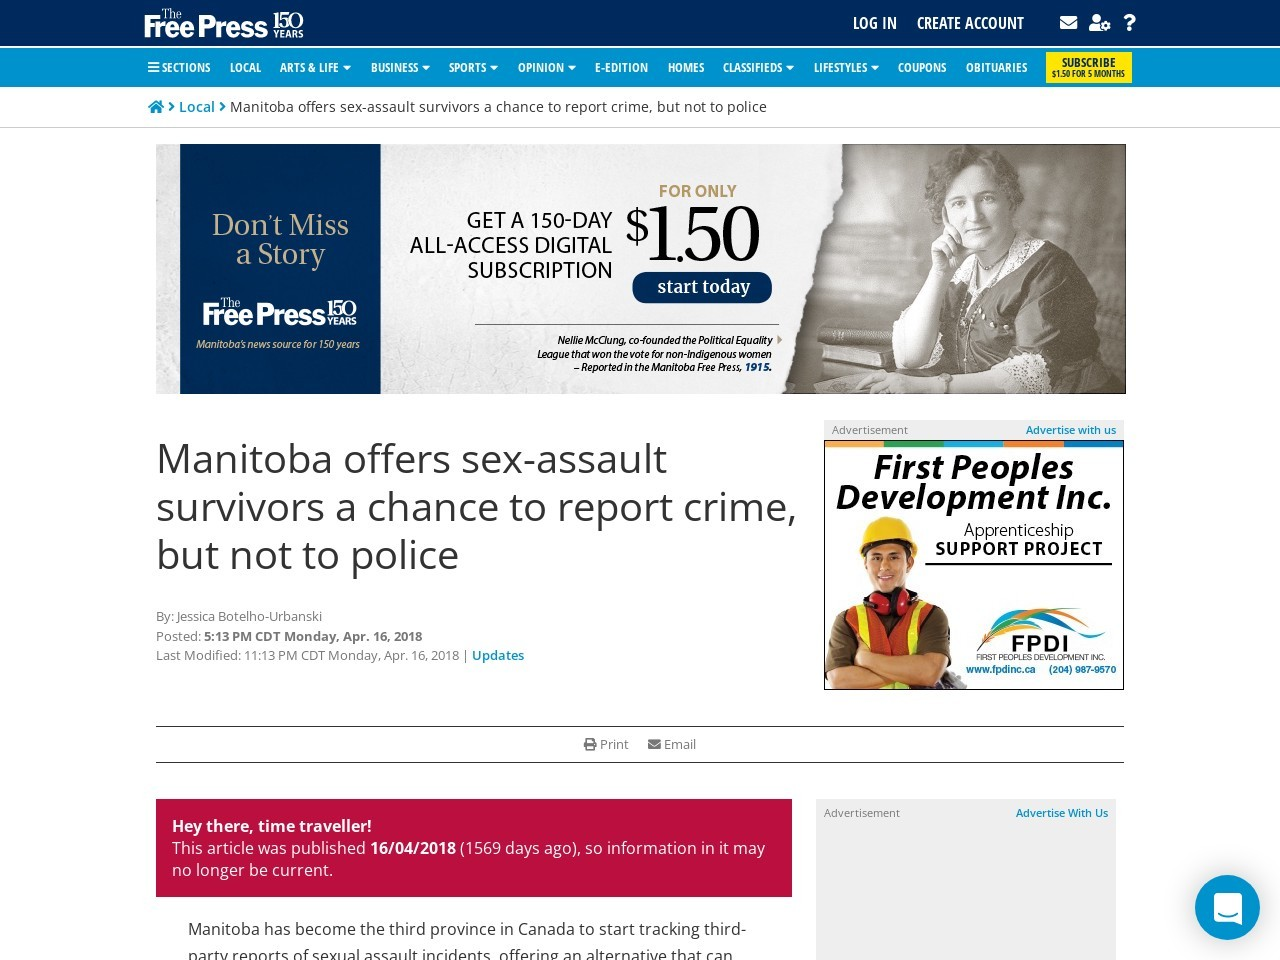 Manitoba offers sex-assault survivors a chance to report crime, but not to police